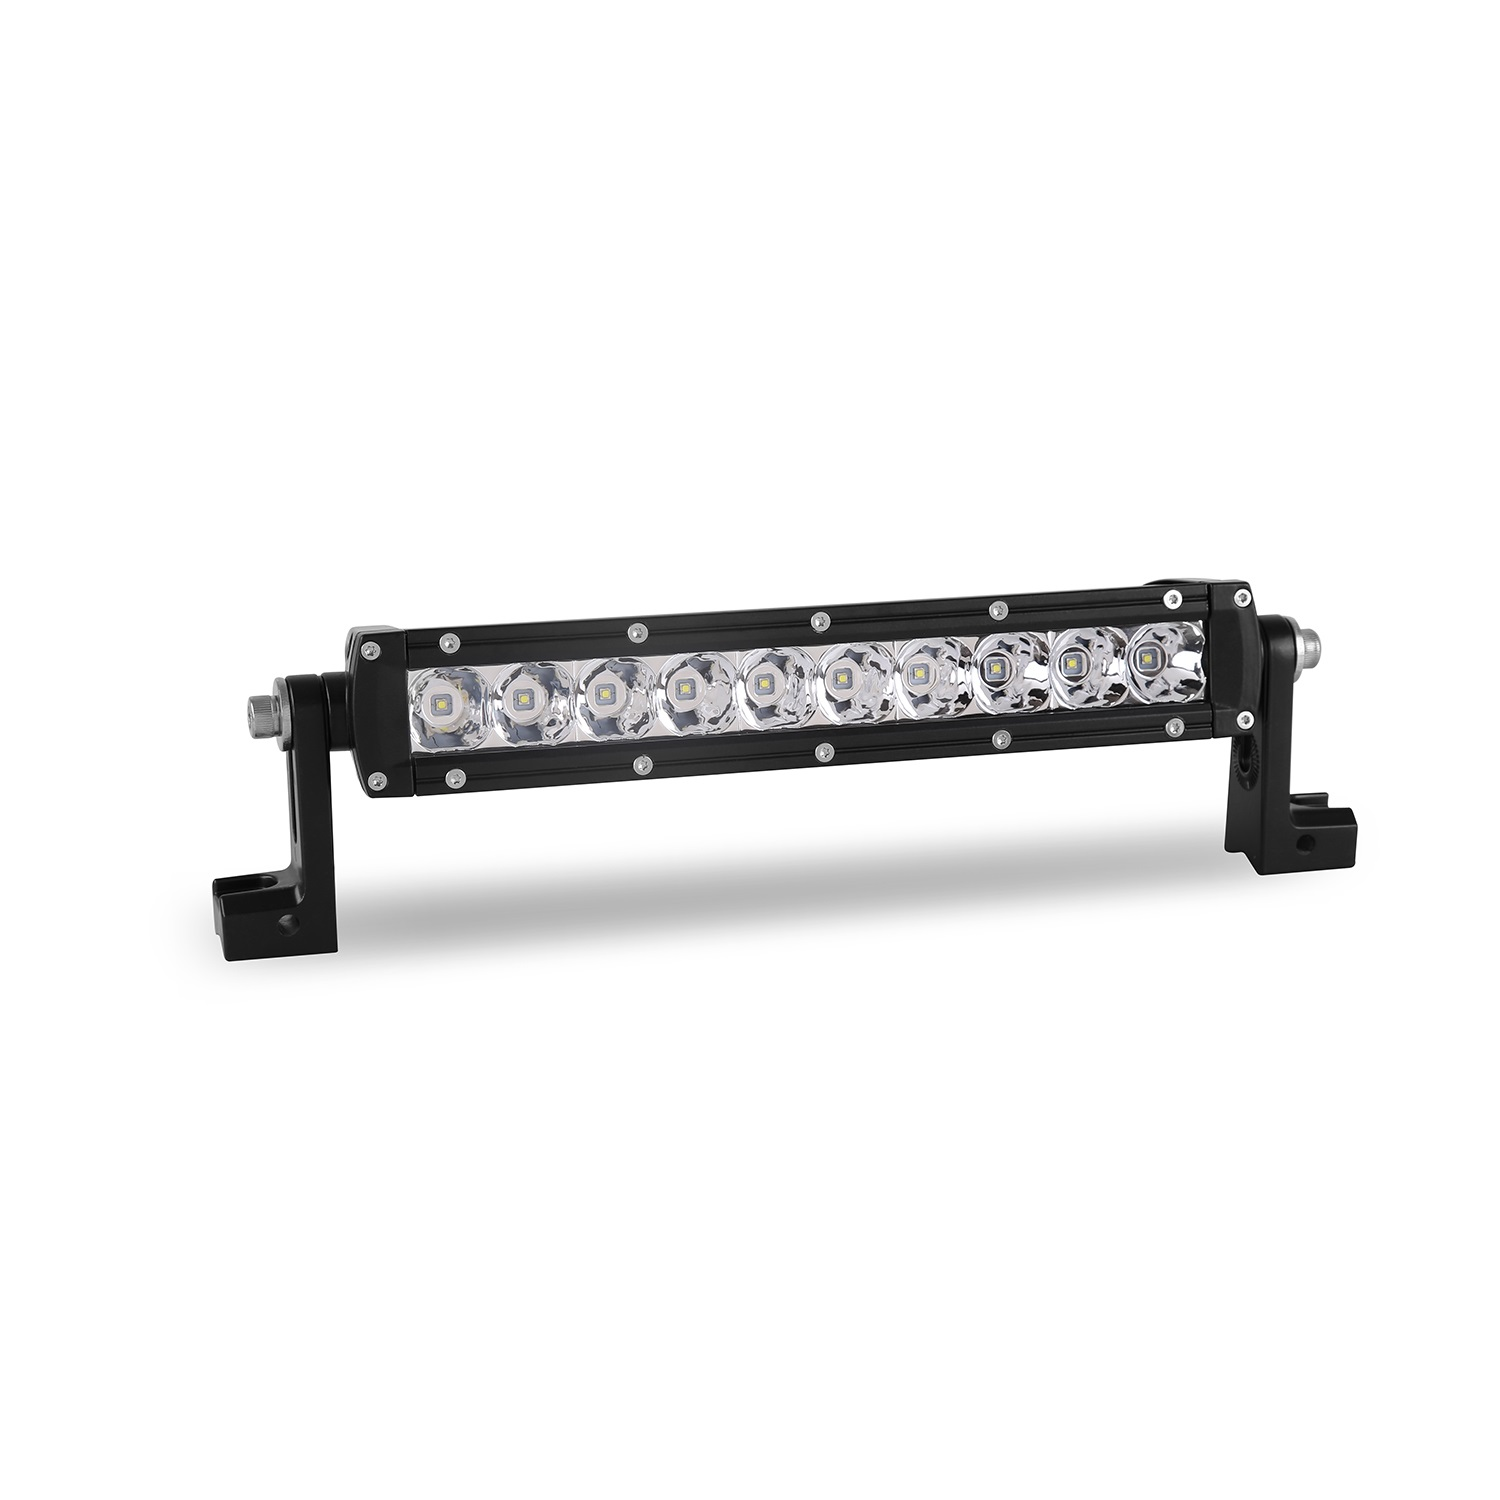 Westin 09-12270-10S Xtreme LED Light Bar